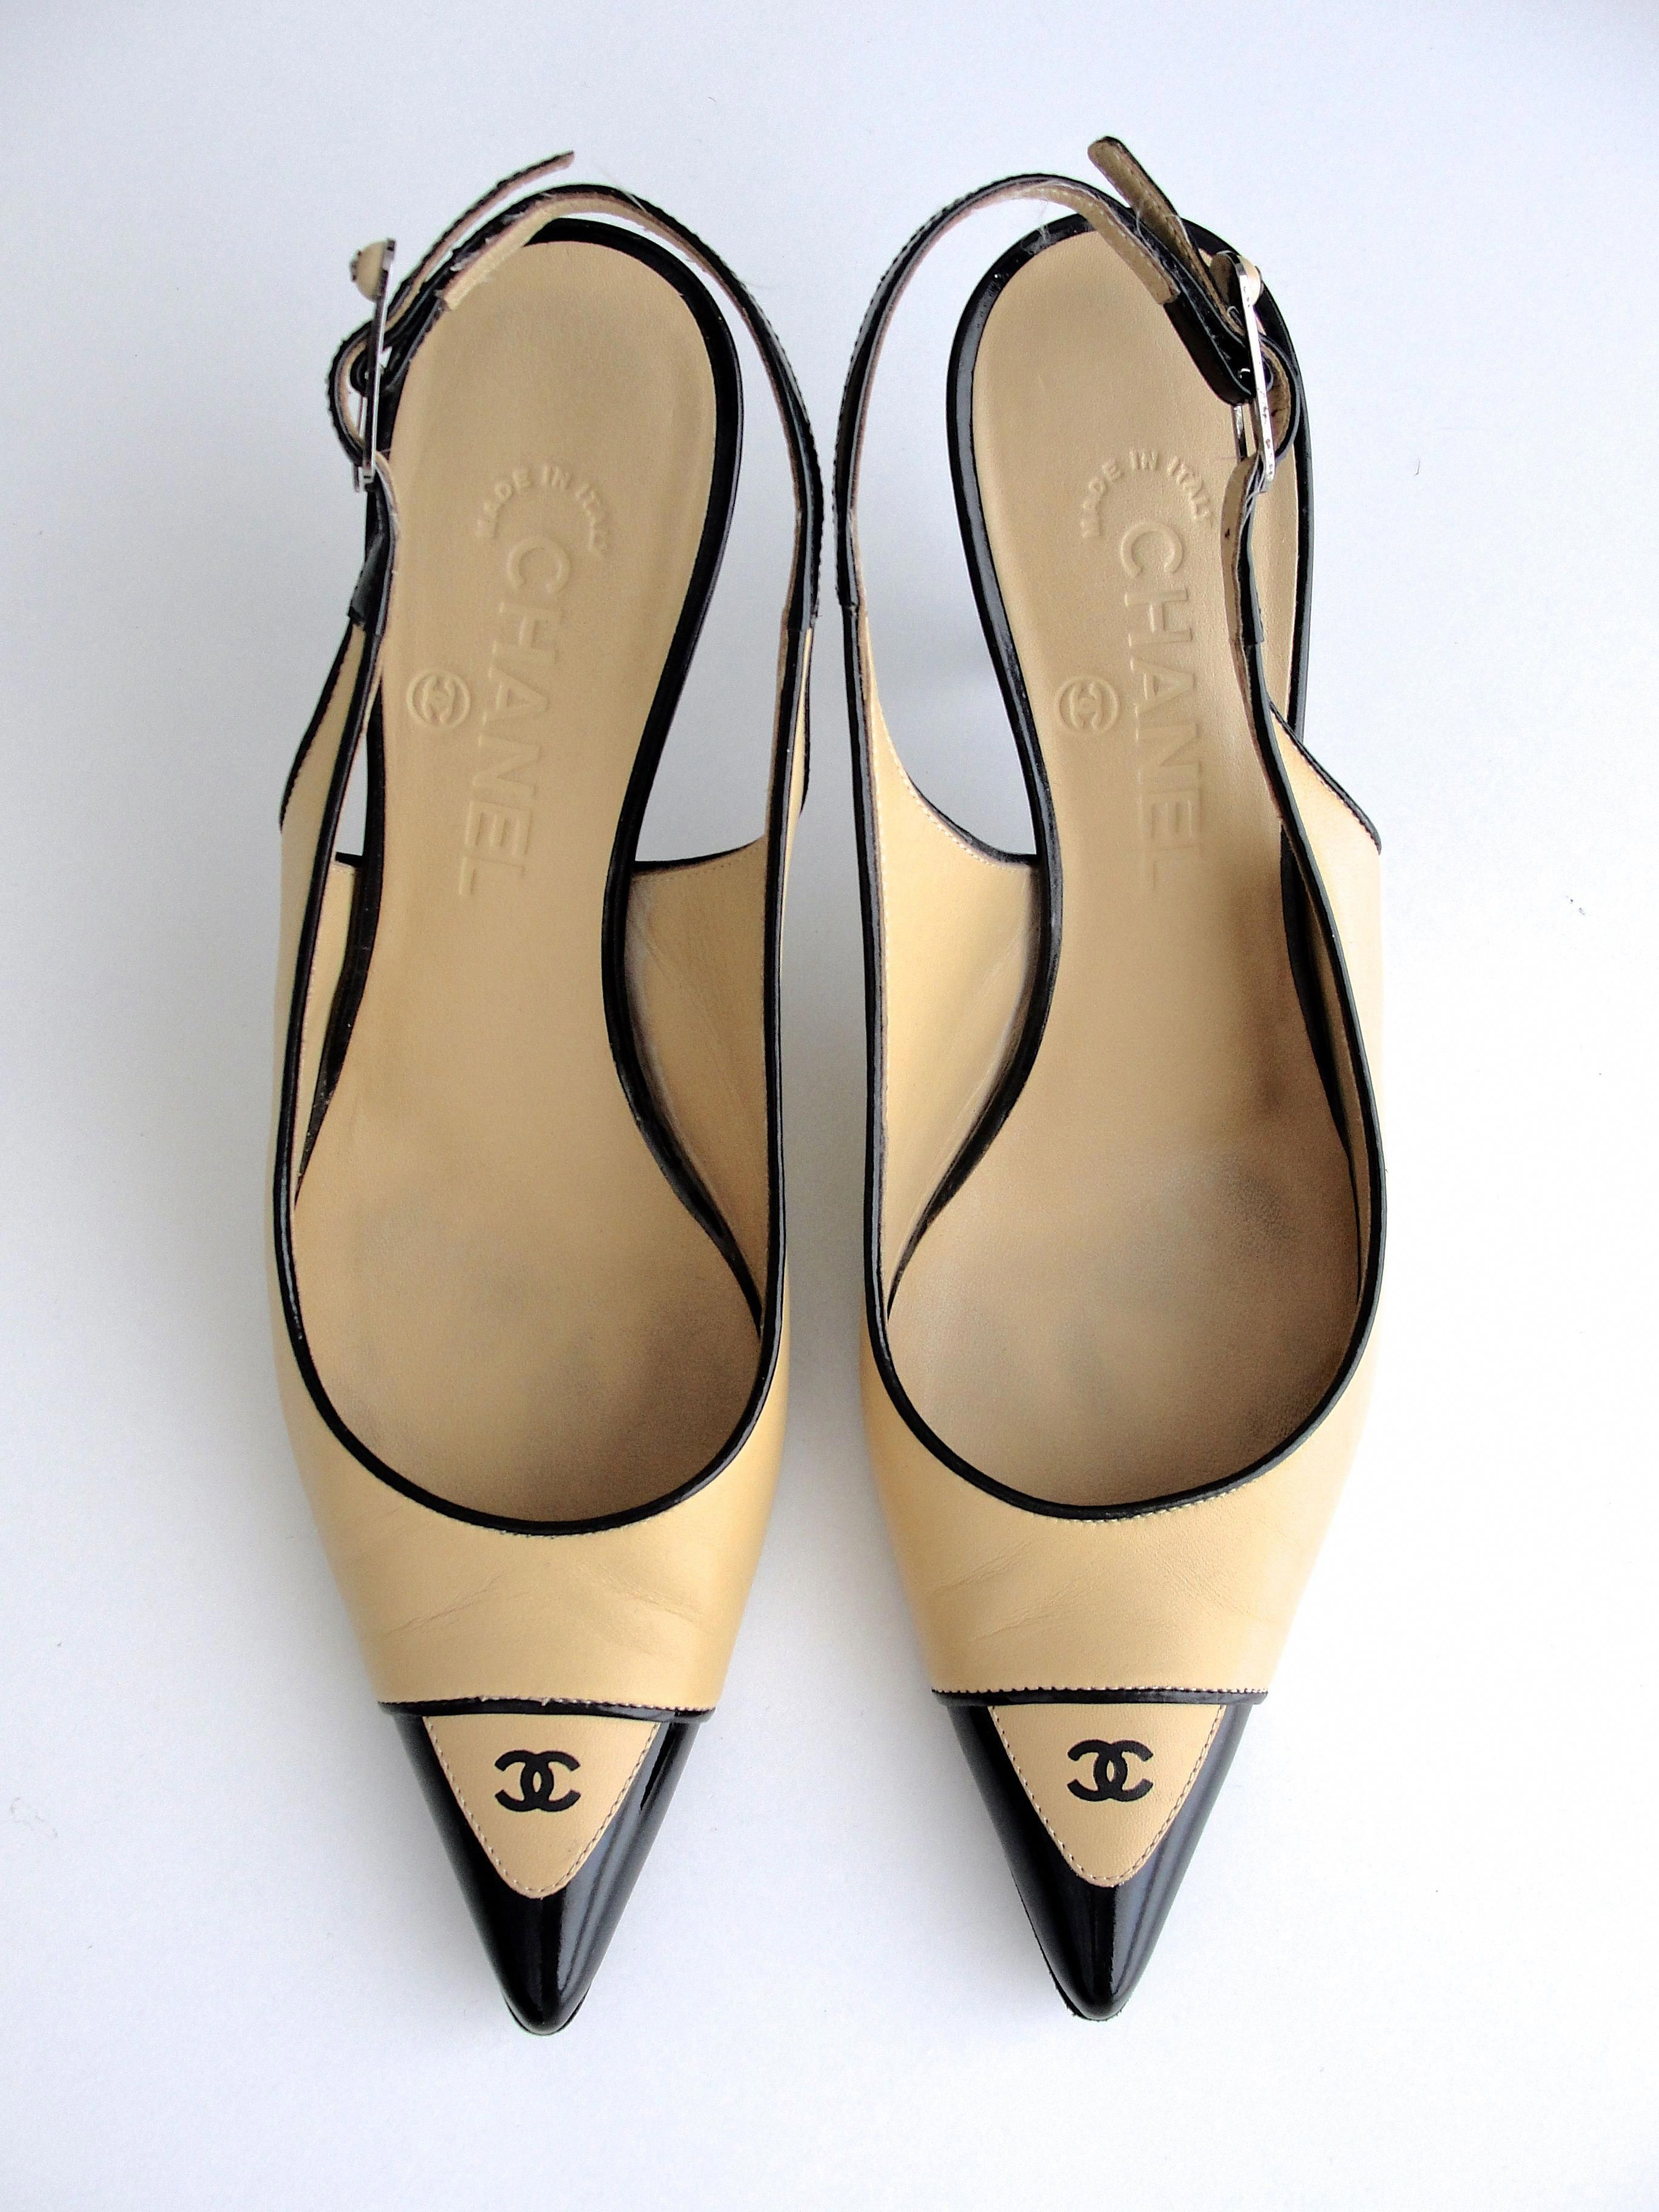 There are so many styles and colors of ladies shoes, it